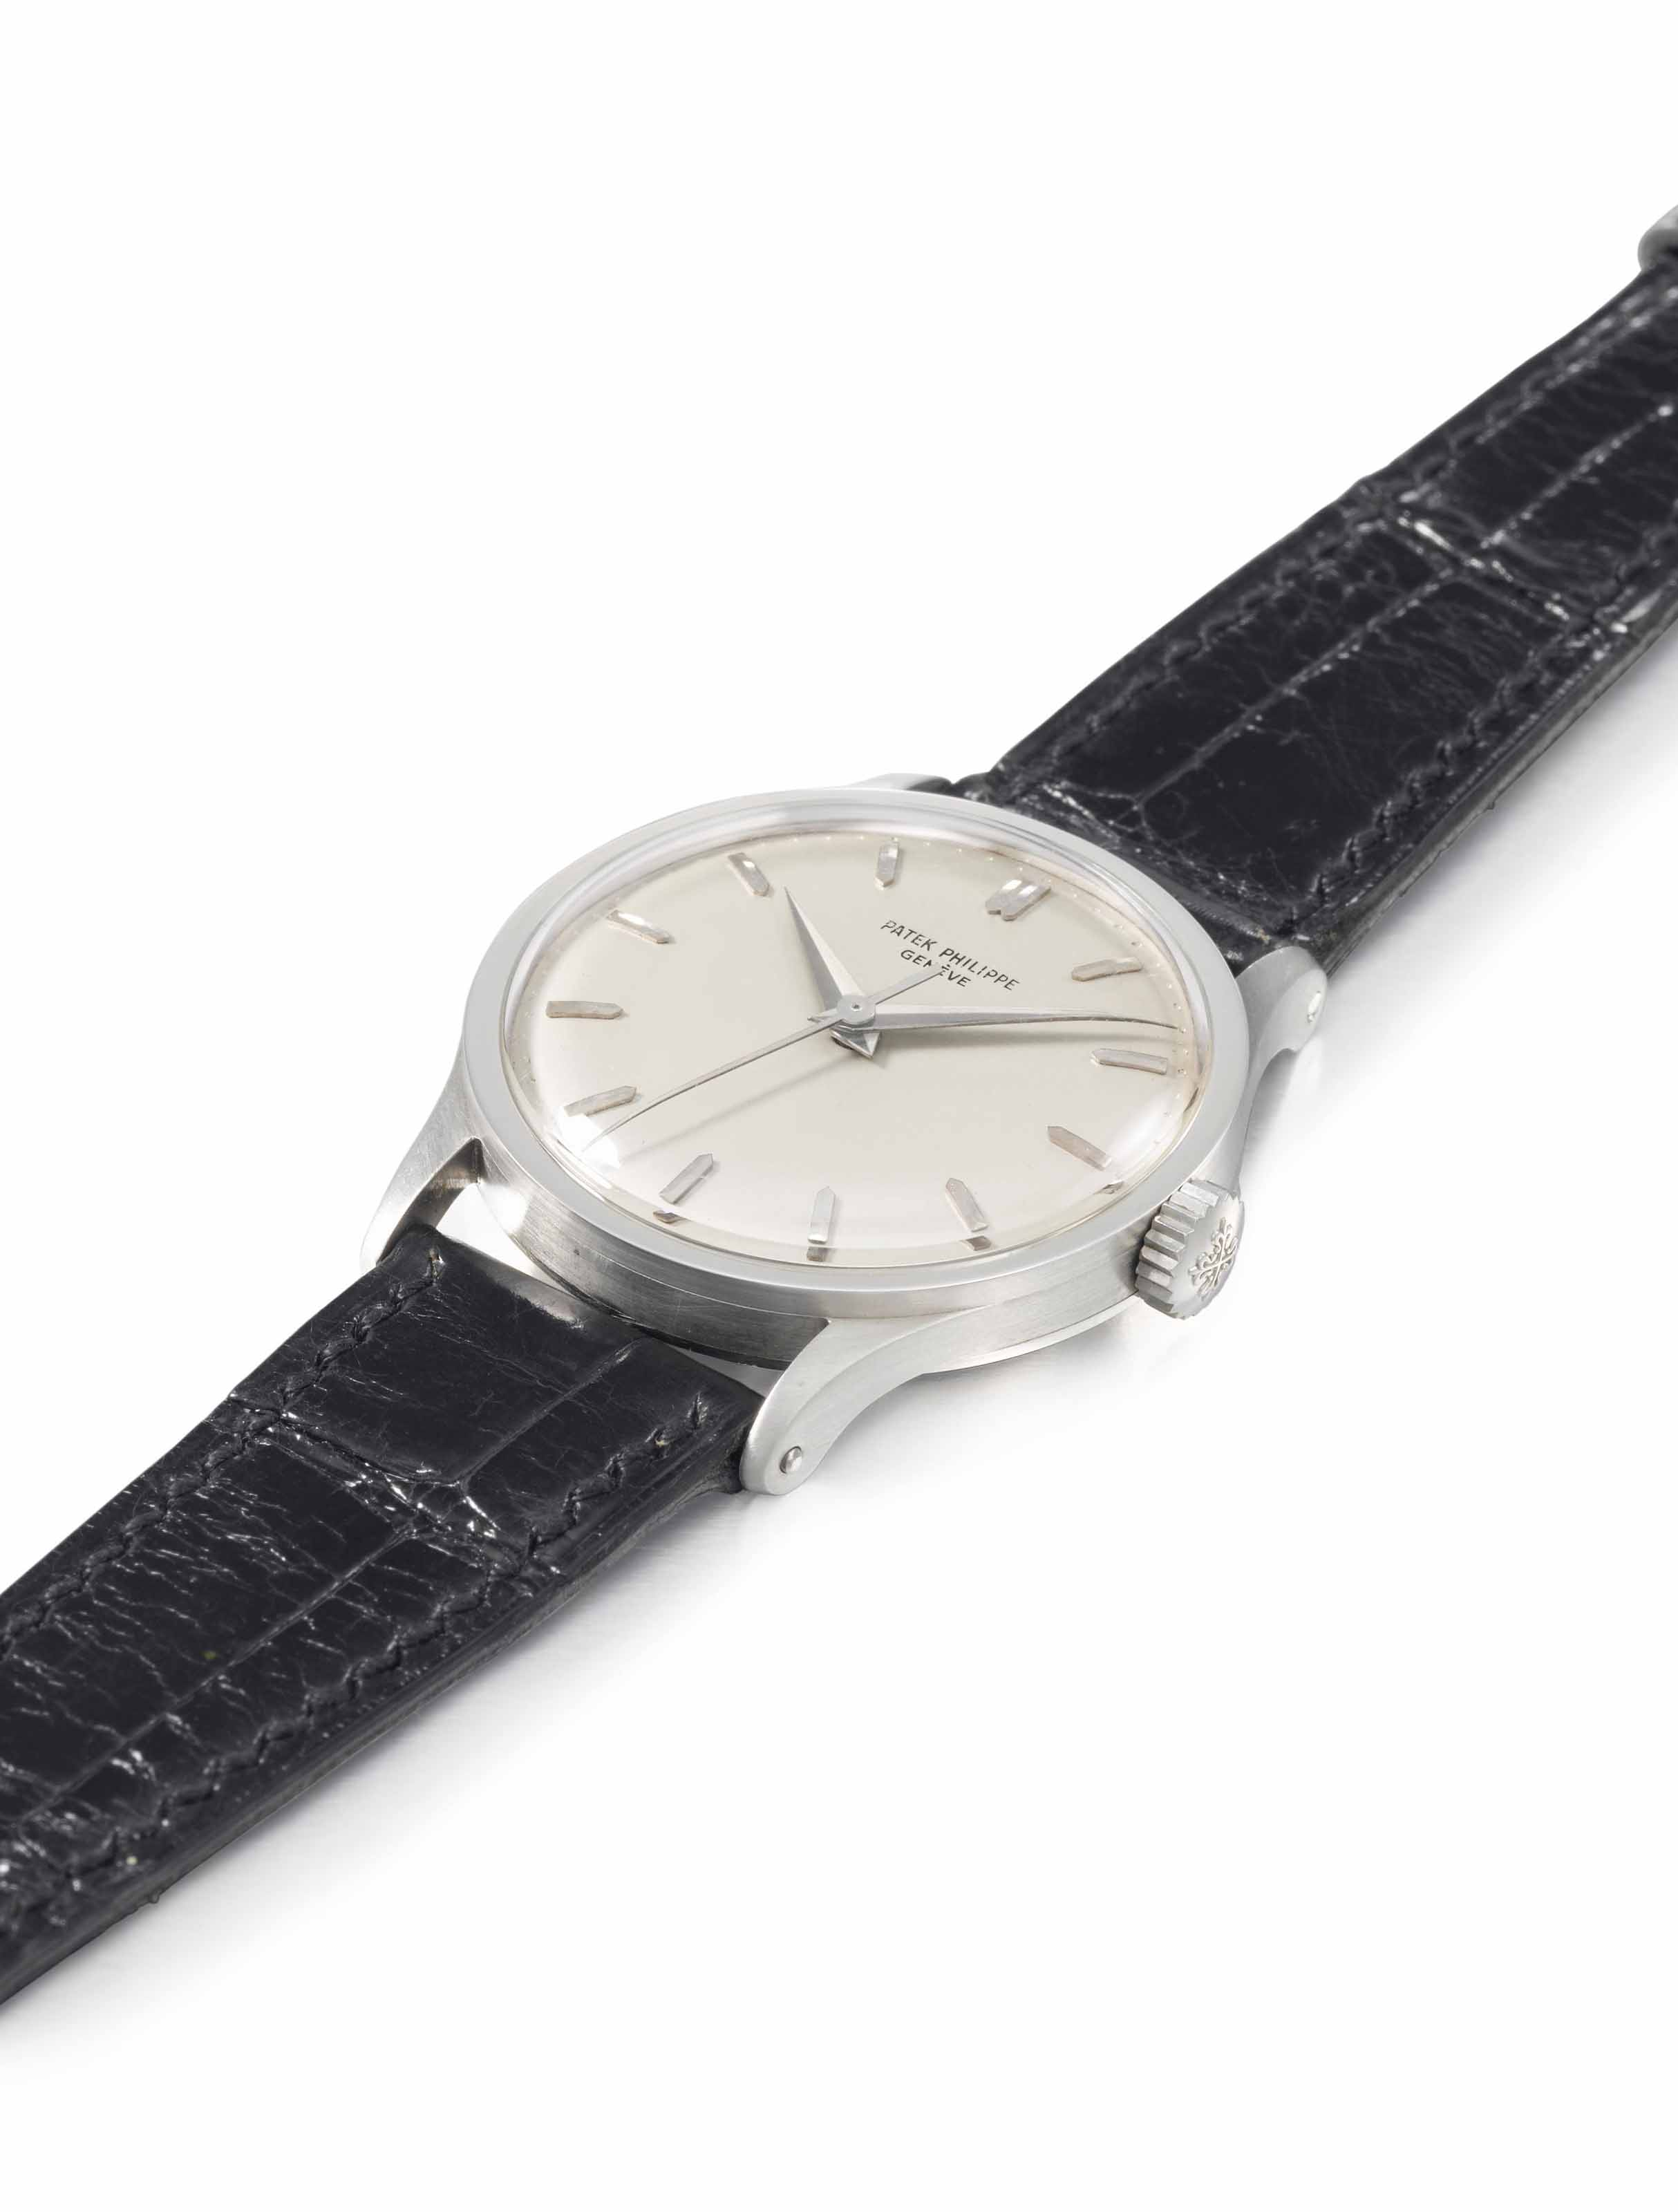 PATEK PHILIPPE. A VERY RARE AND FINE LARGE PLATINUM WRISTWATCH WITH SWEEP CENTRE SECONDS